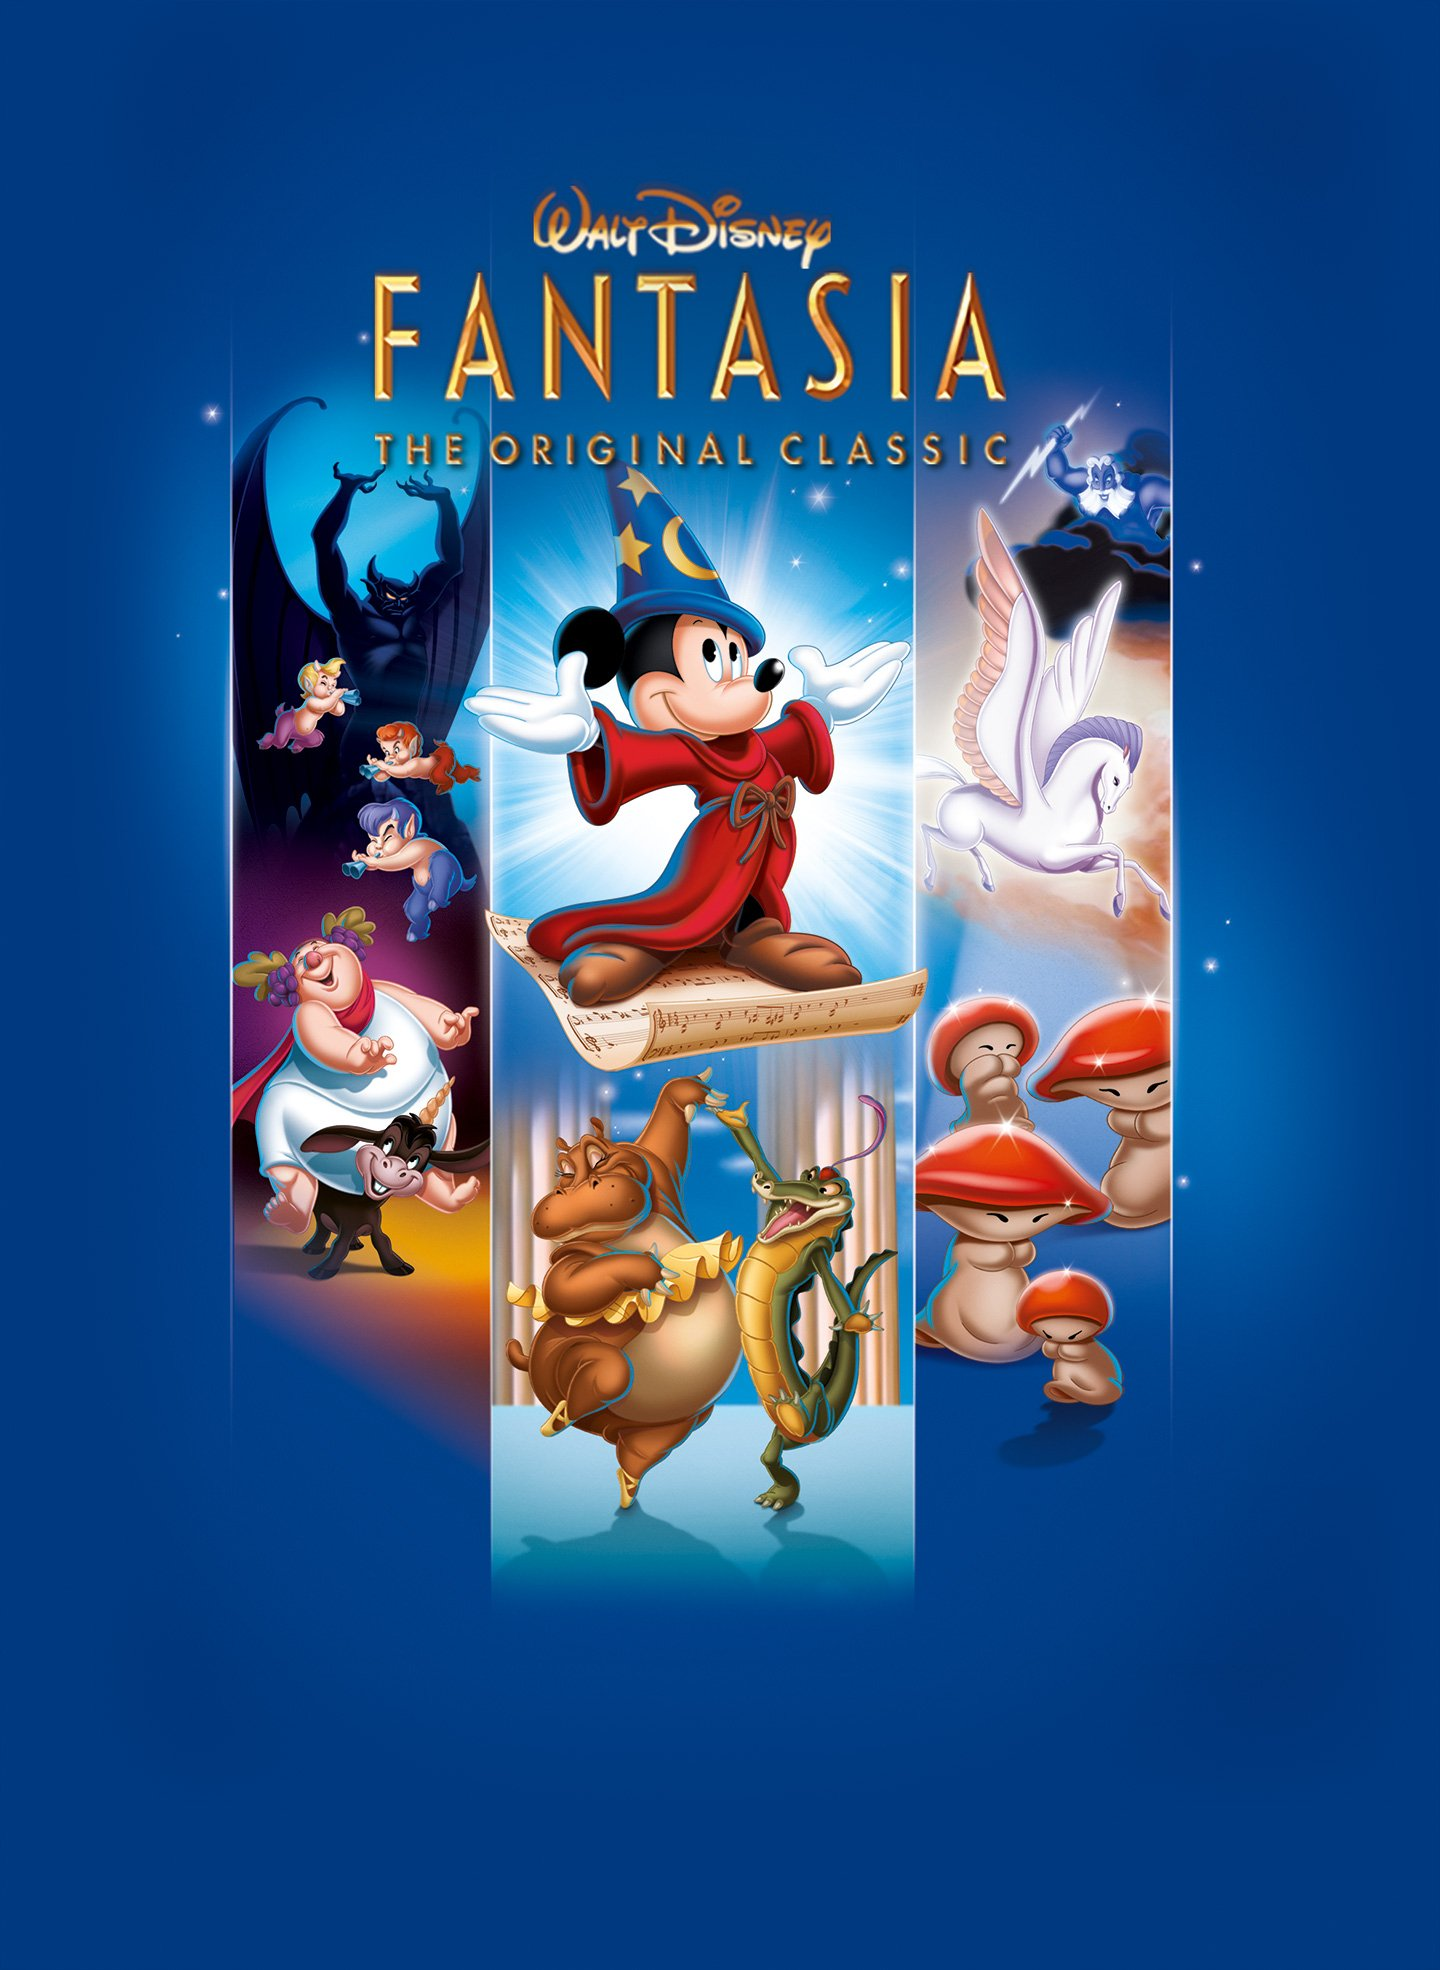 10 Facinating Behind the Scenes Fantasia Facts